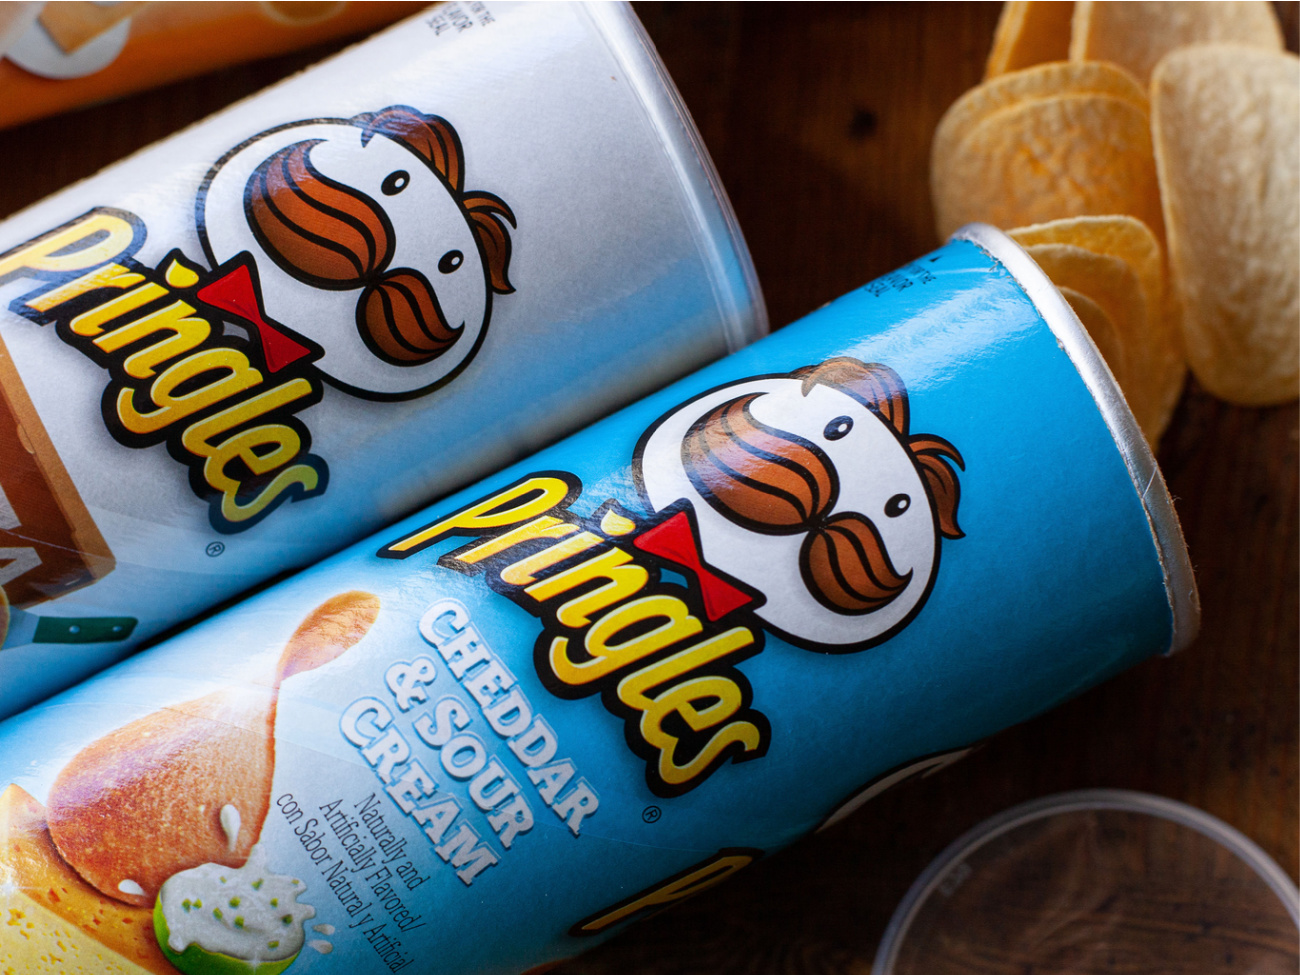 Pick Up Plenty Of Pringles For Game Day - Save Now At Publix on I Heart Publix